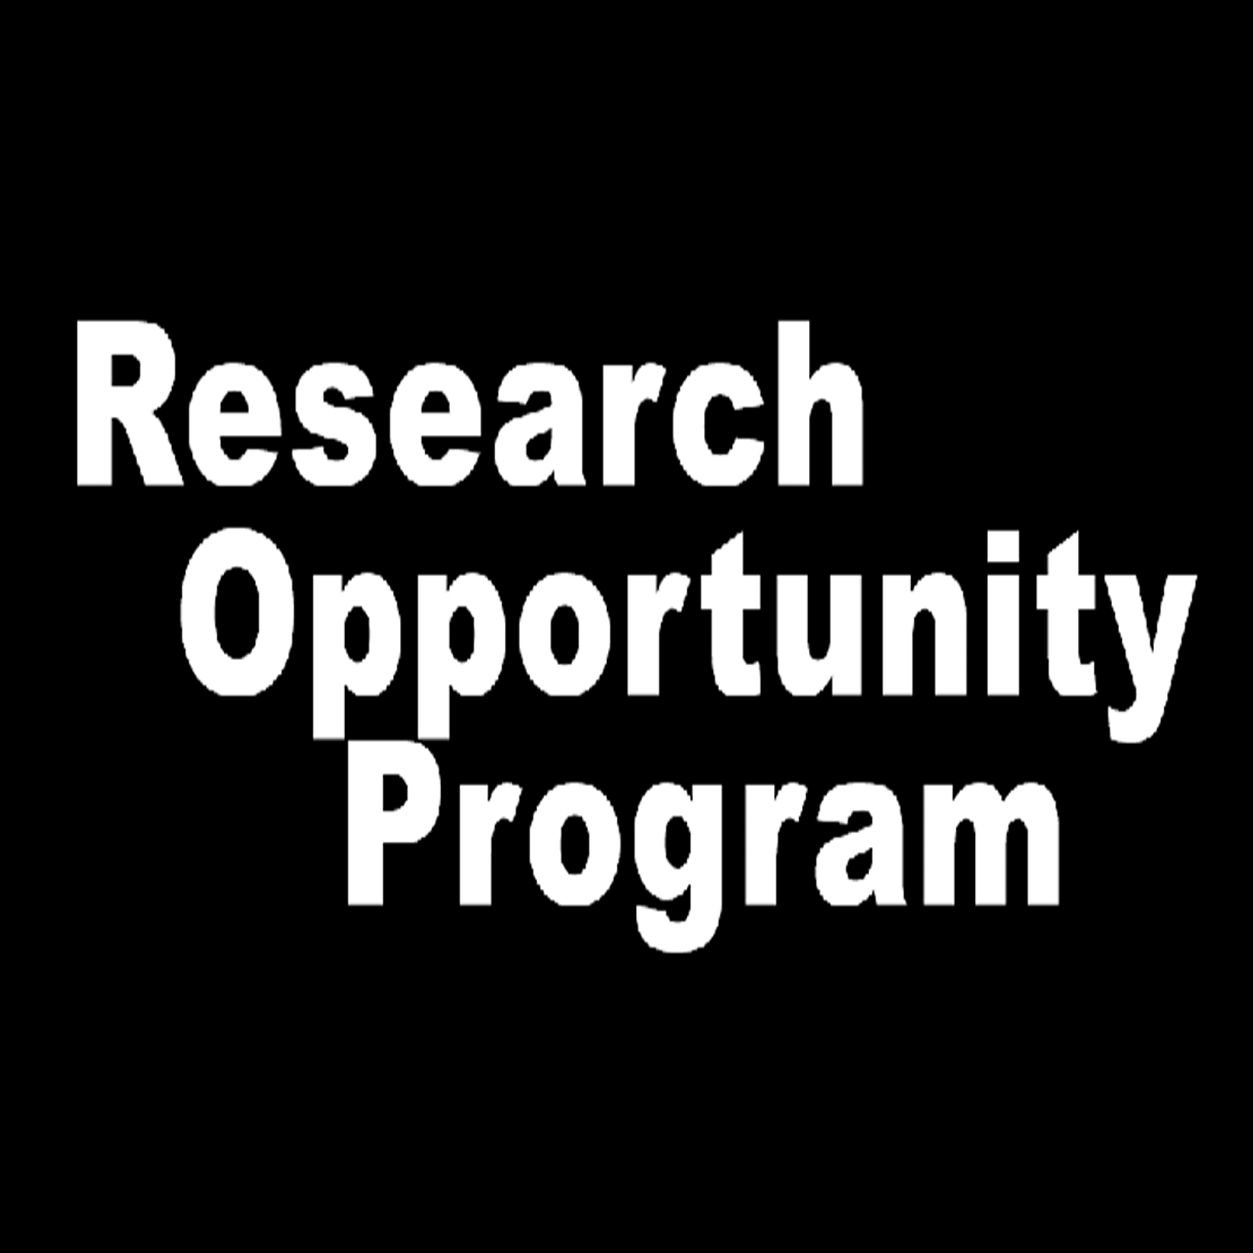 GGR399Y5 Research Opportunity Program